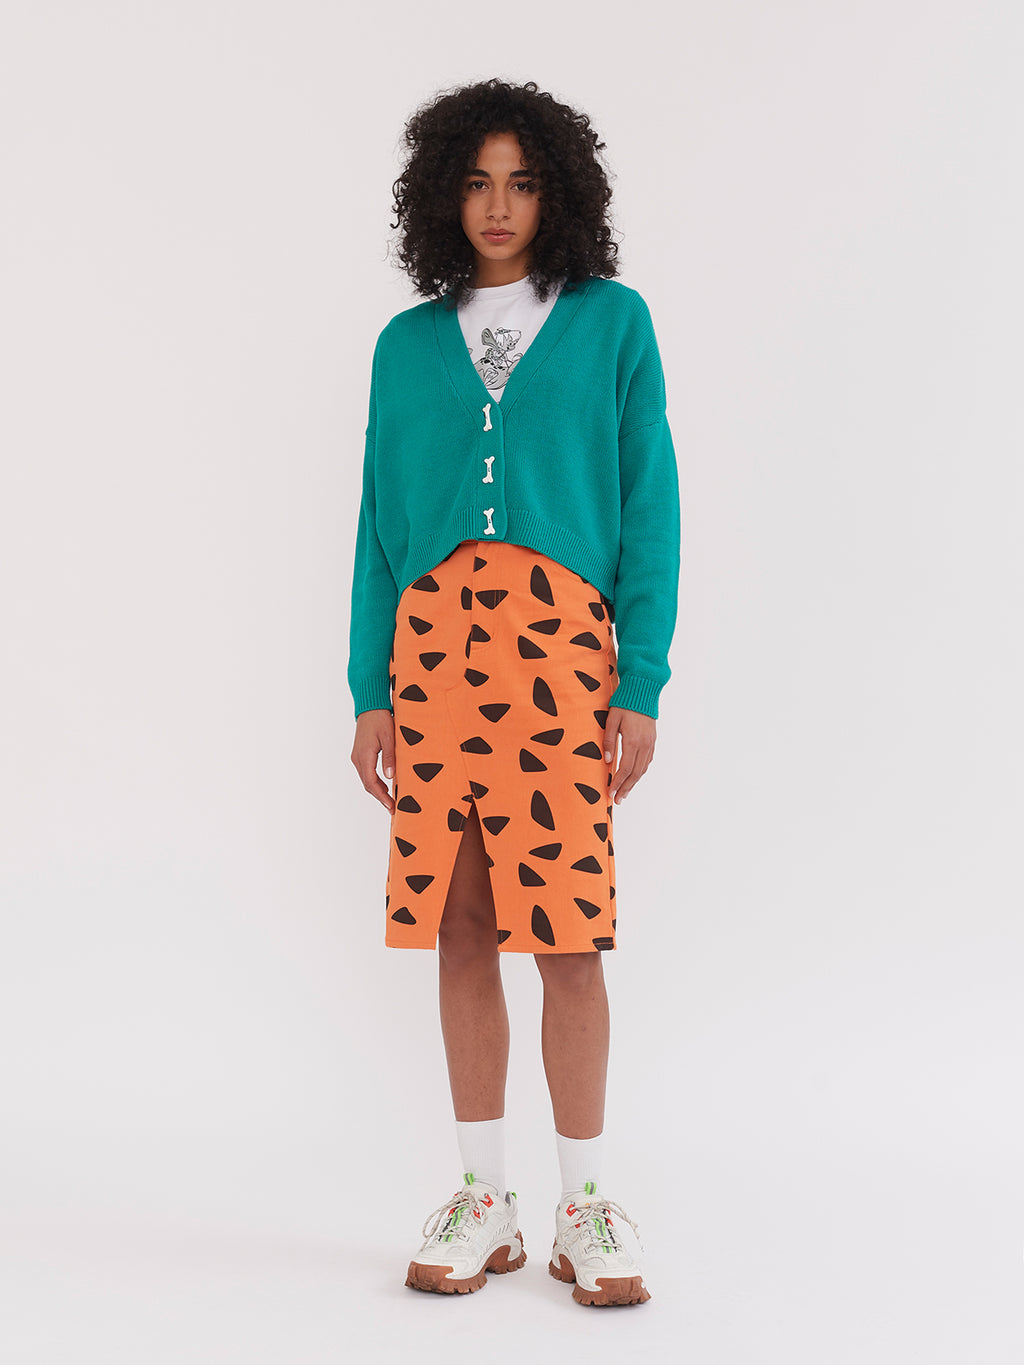 Lazy Oaf x The Flintstones Dino Bone Cardigan